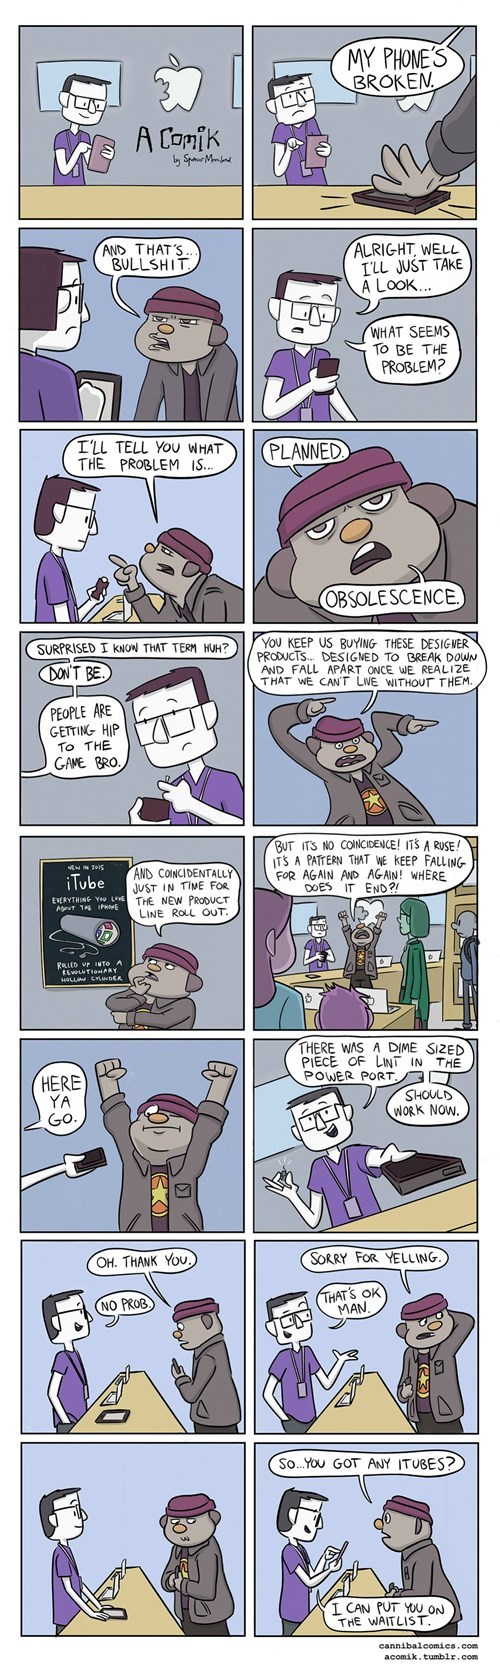 funny-web-comics-good-customer-service-still-trumps-planned-obsolescence